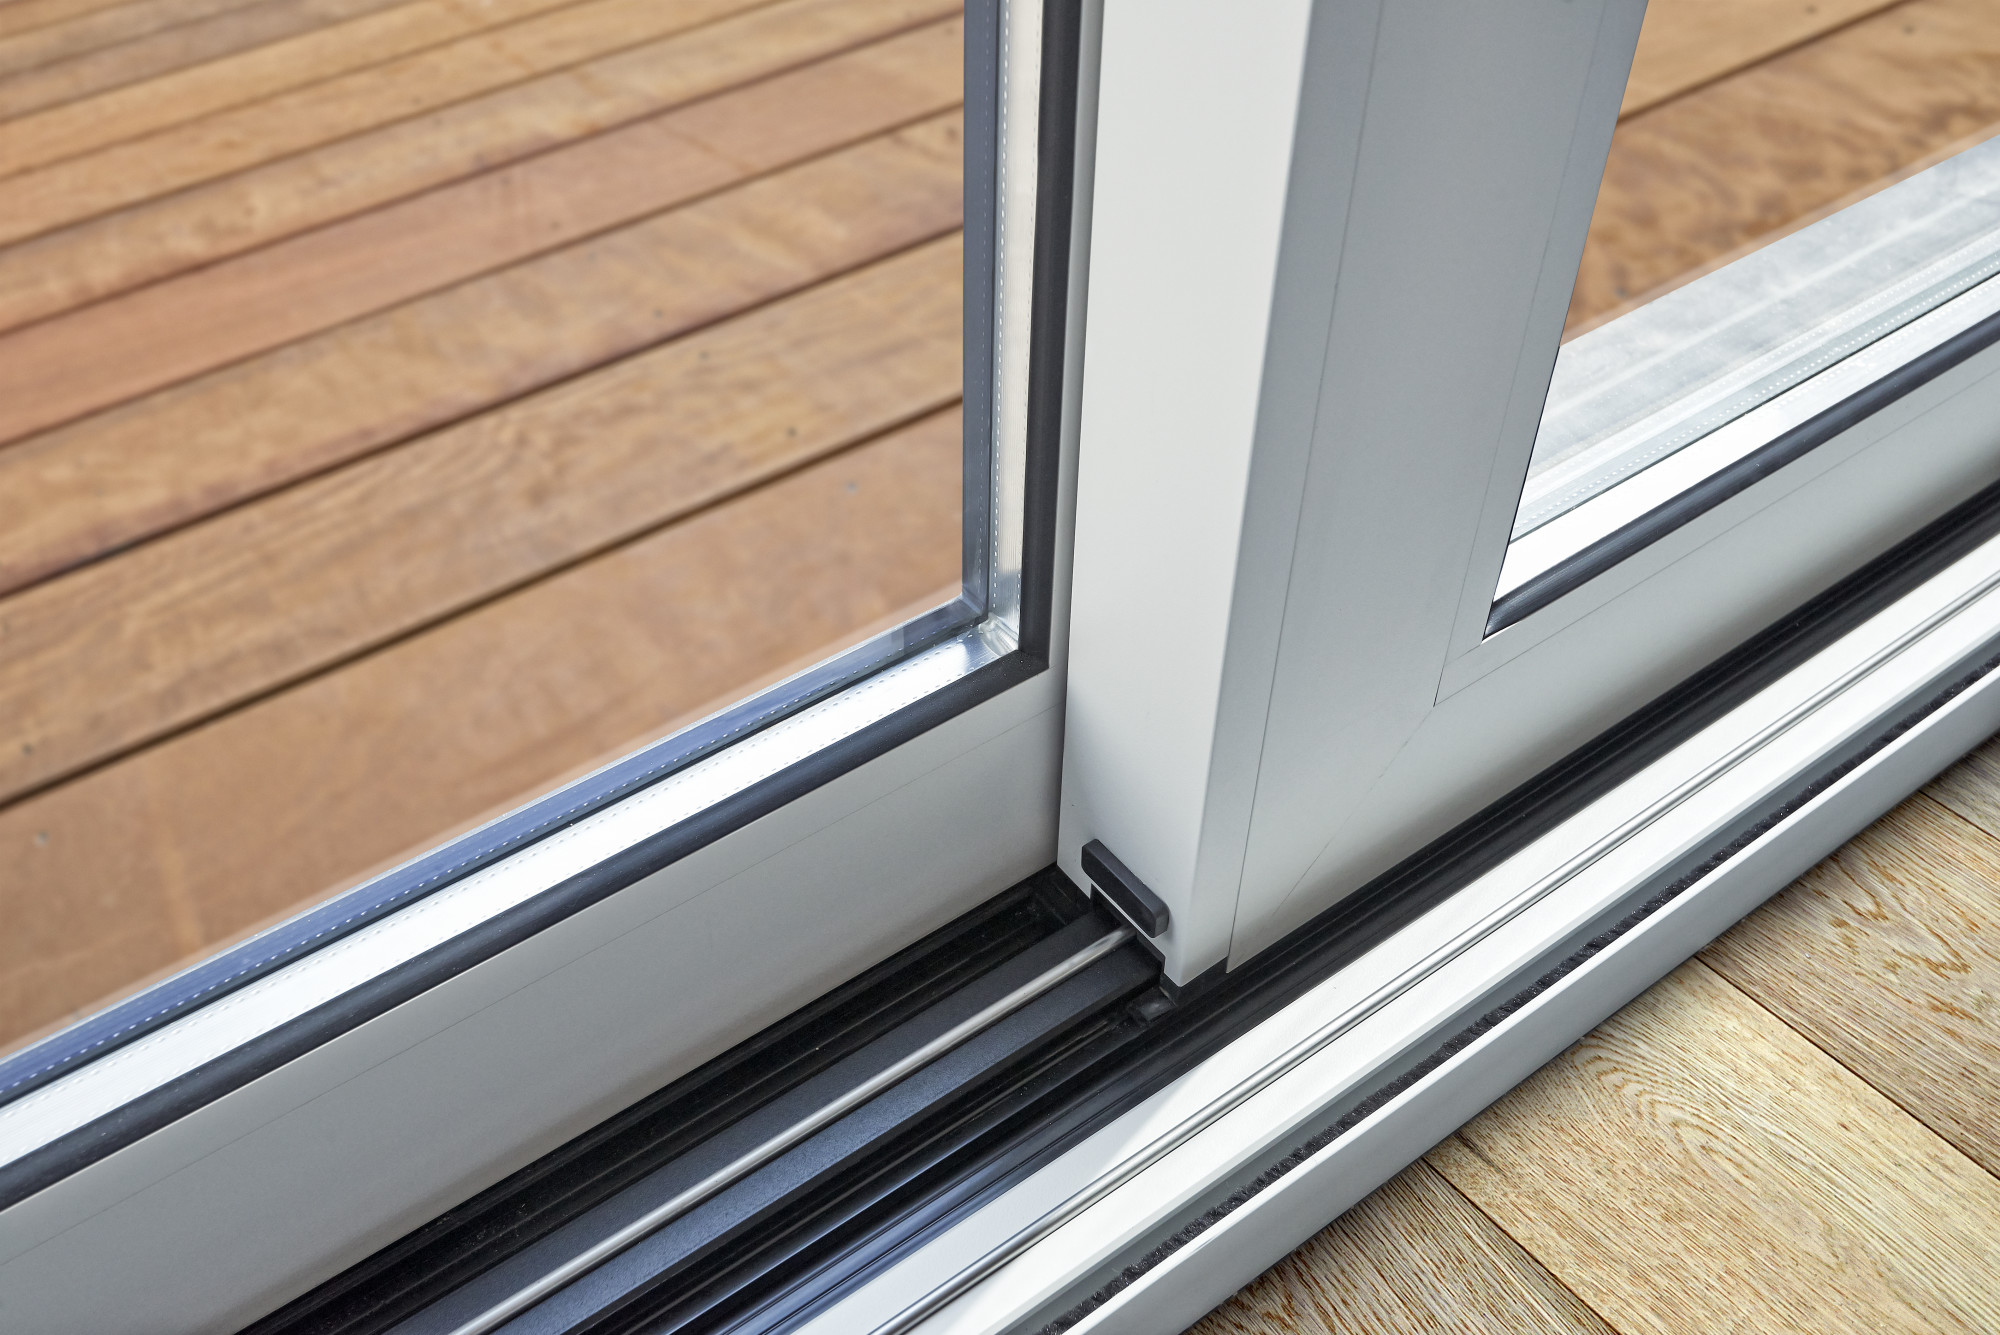 The Best Sliding Door Dimensions: What Size Sliding Glass Doors Do You Need?